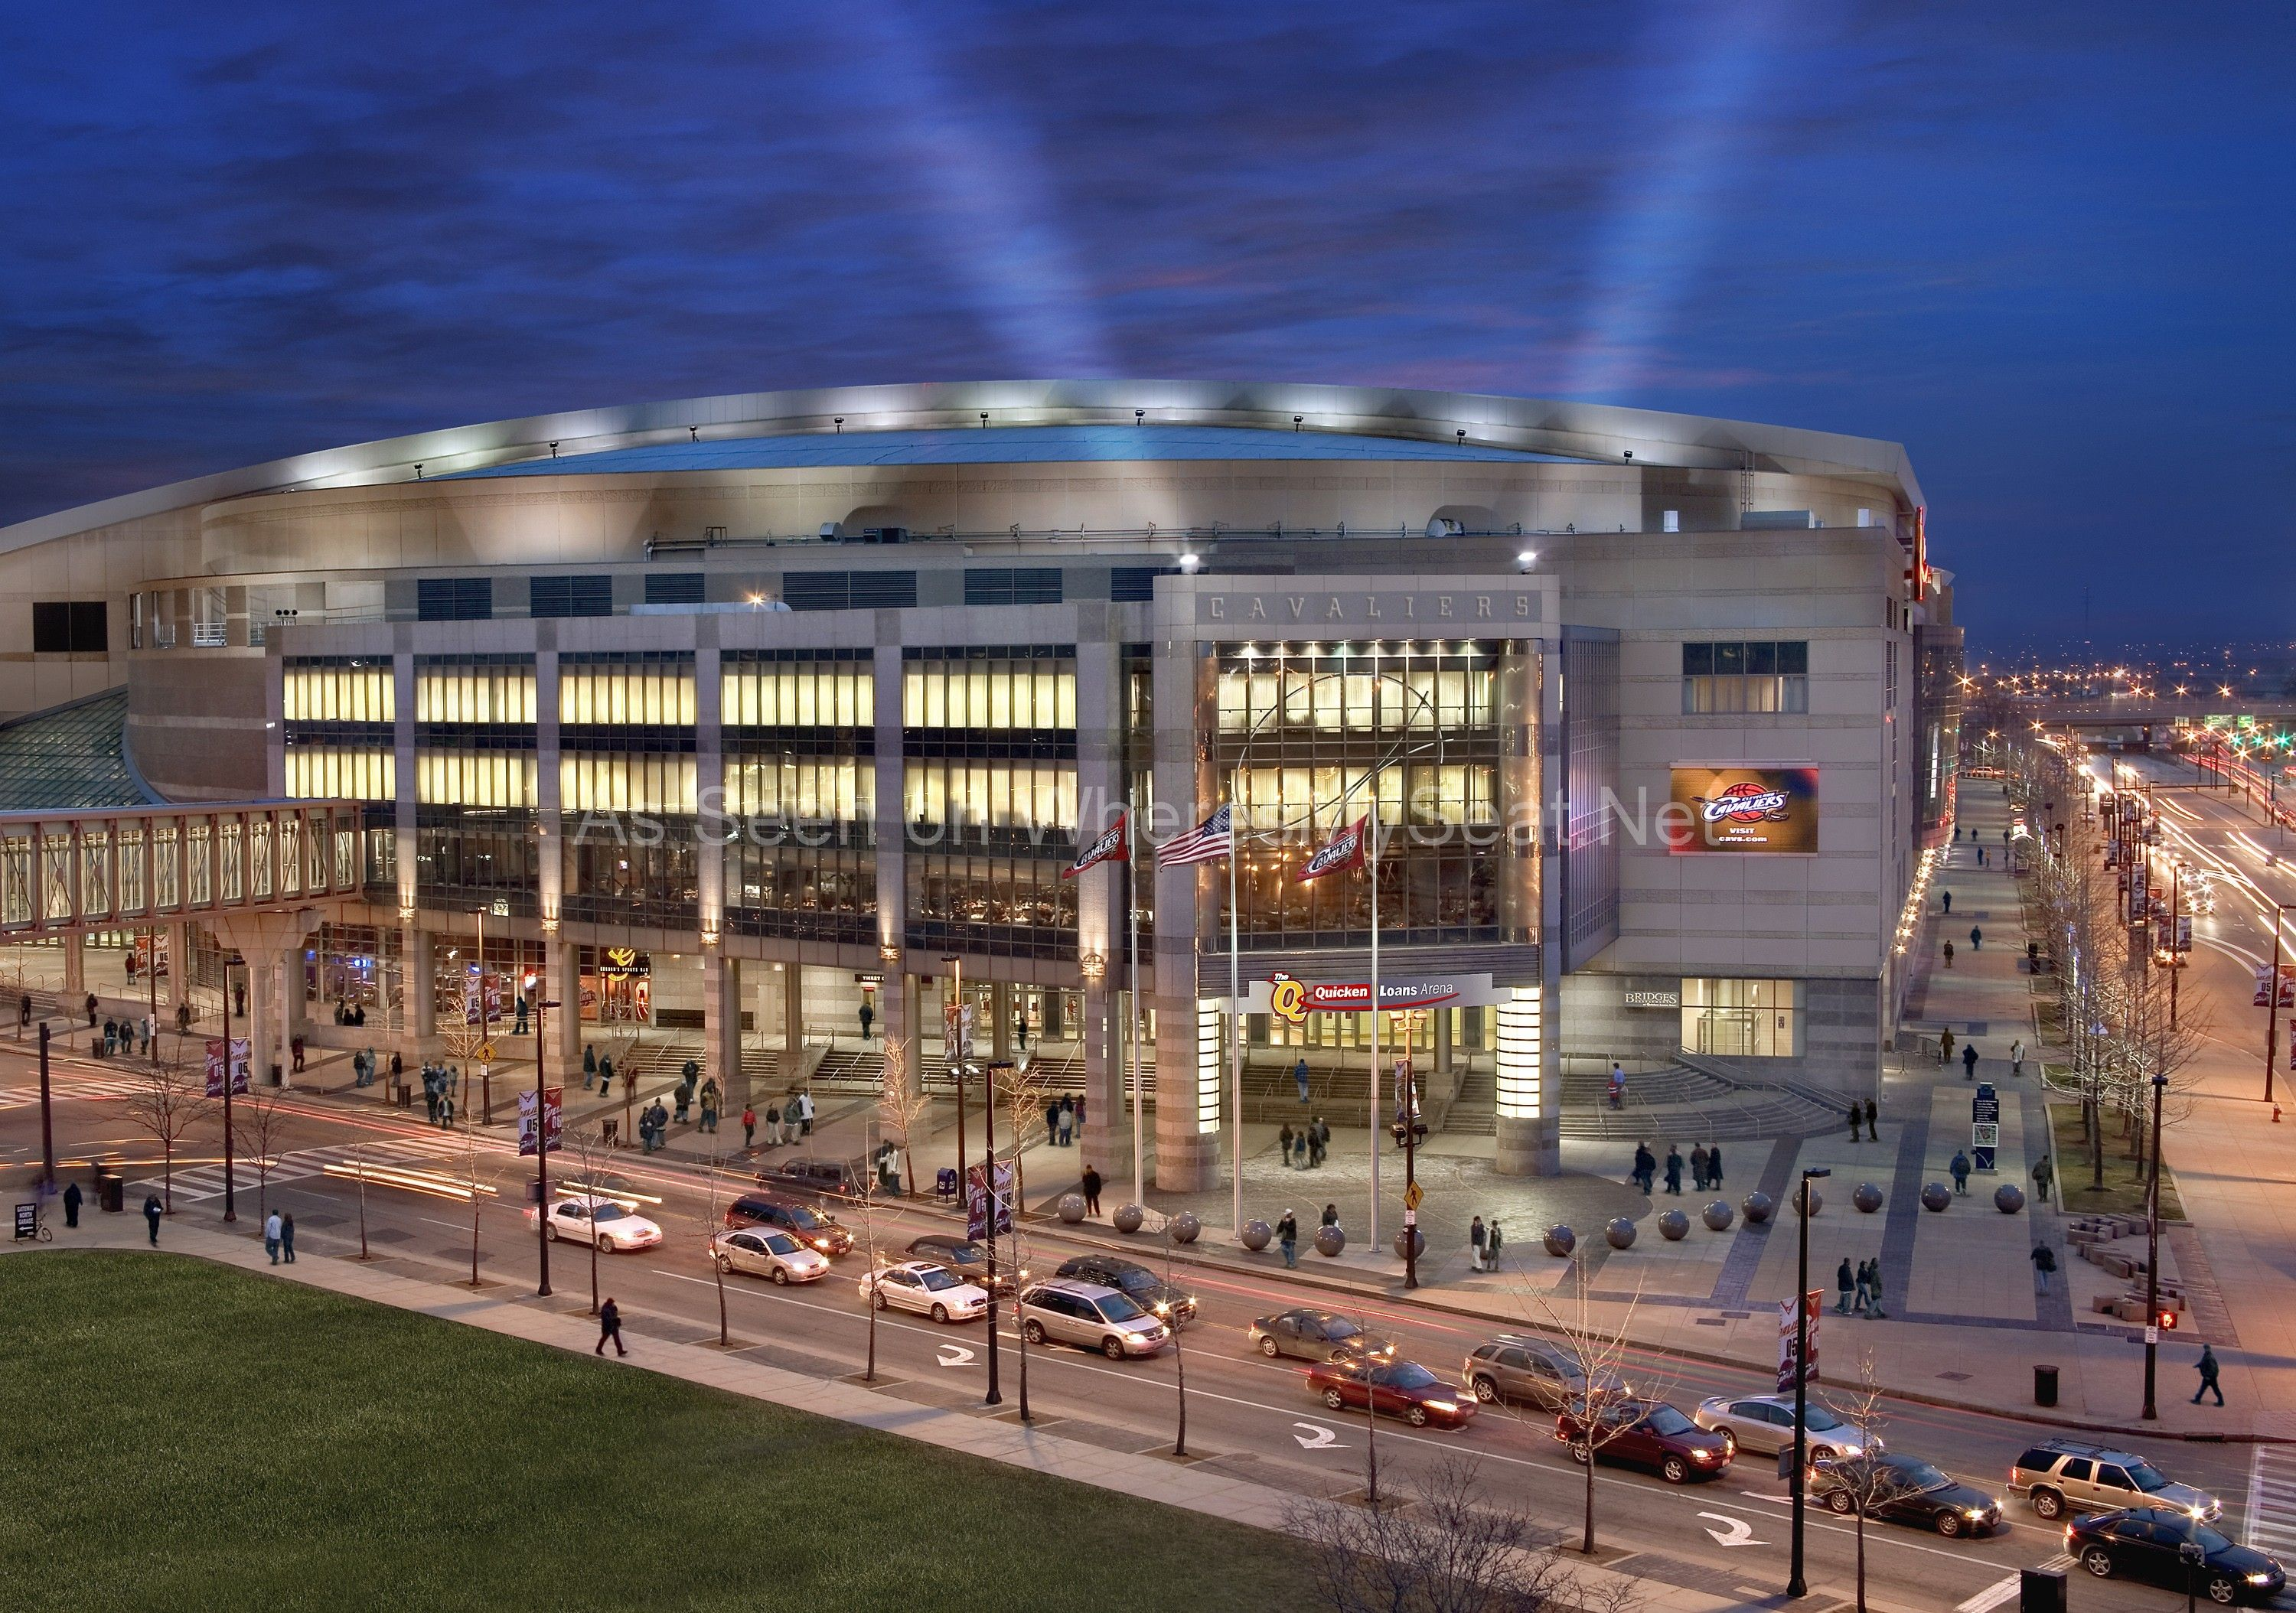 Quicken Loans Arena Cleveland Oh We Have Tickets To All Games At The Q Http Wheresmyseat Net Q With Images Quicken Loans Arena Cleveland Cleveland Against The World